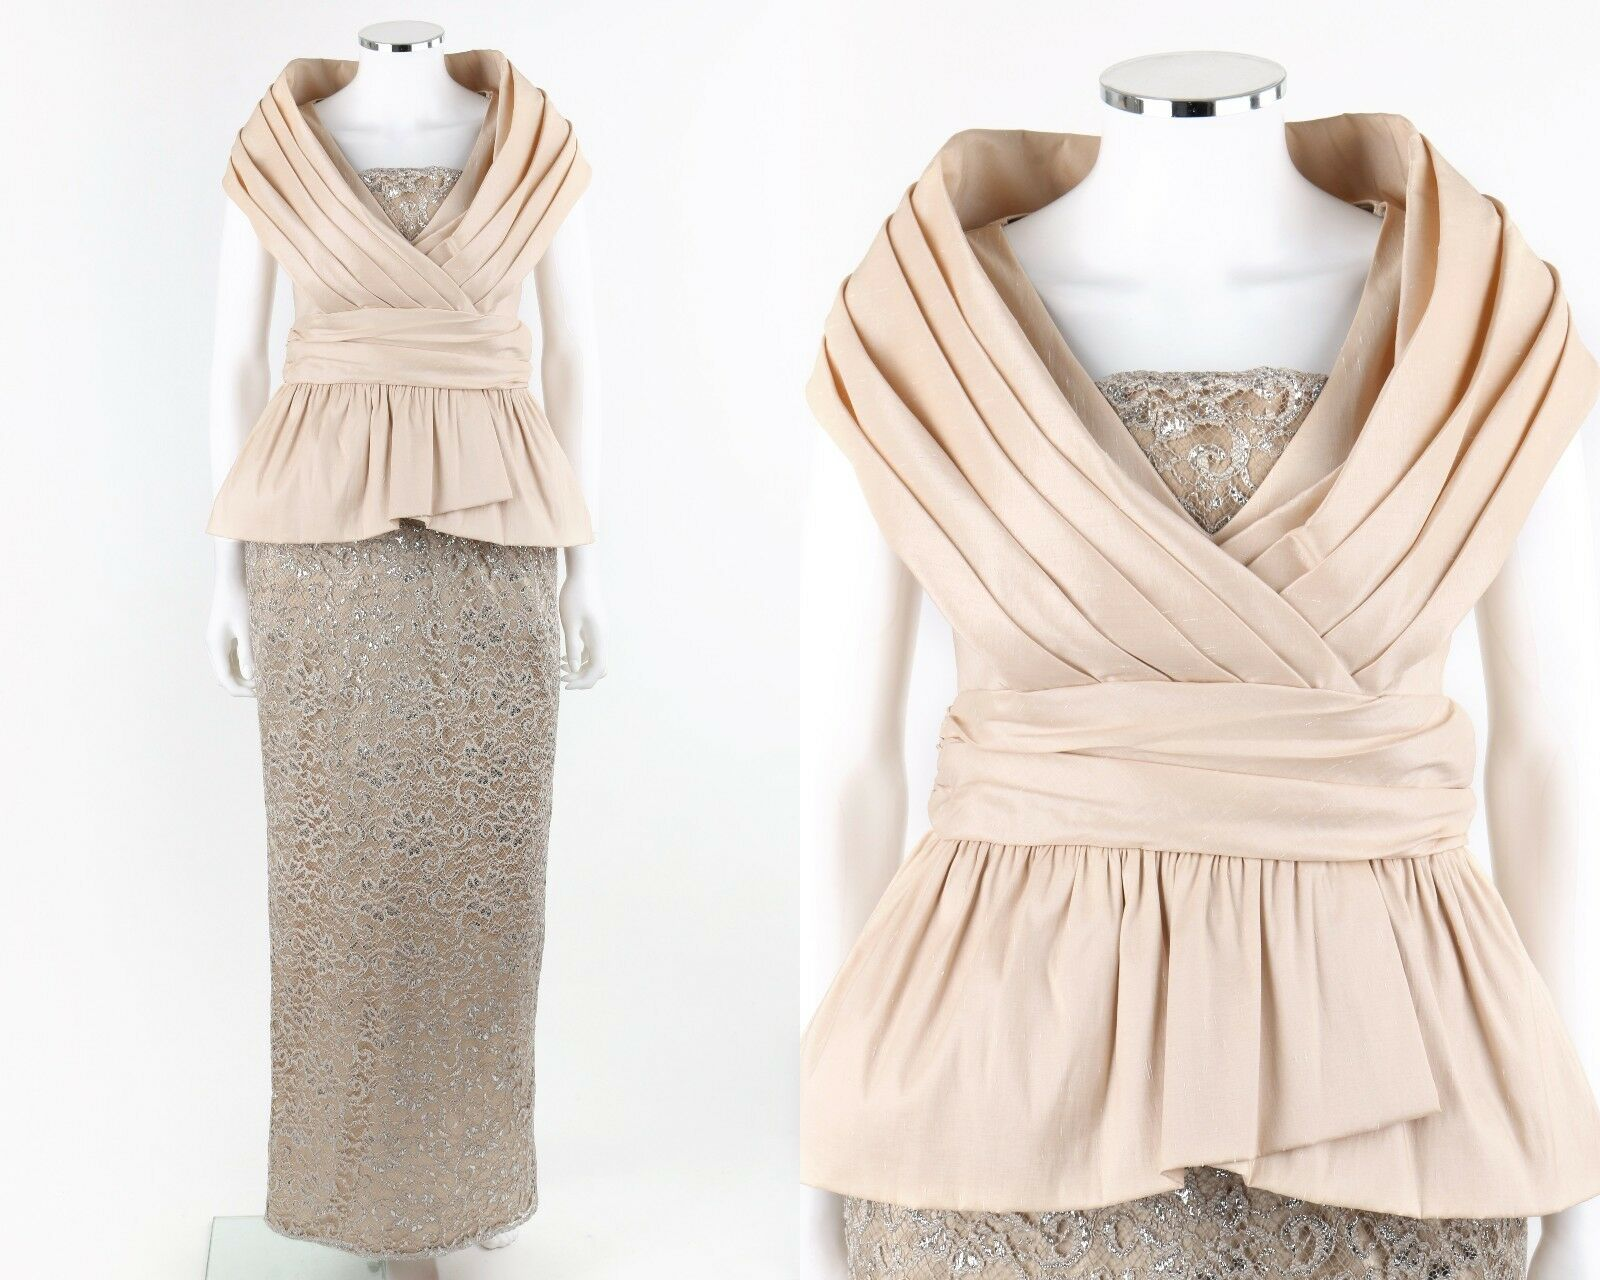 BADGLEY MISCHKA Collection Beige Portrait Collar Peplum Lace Evening Gown Size 8